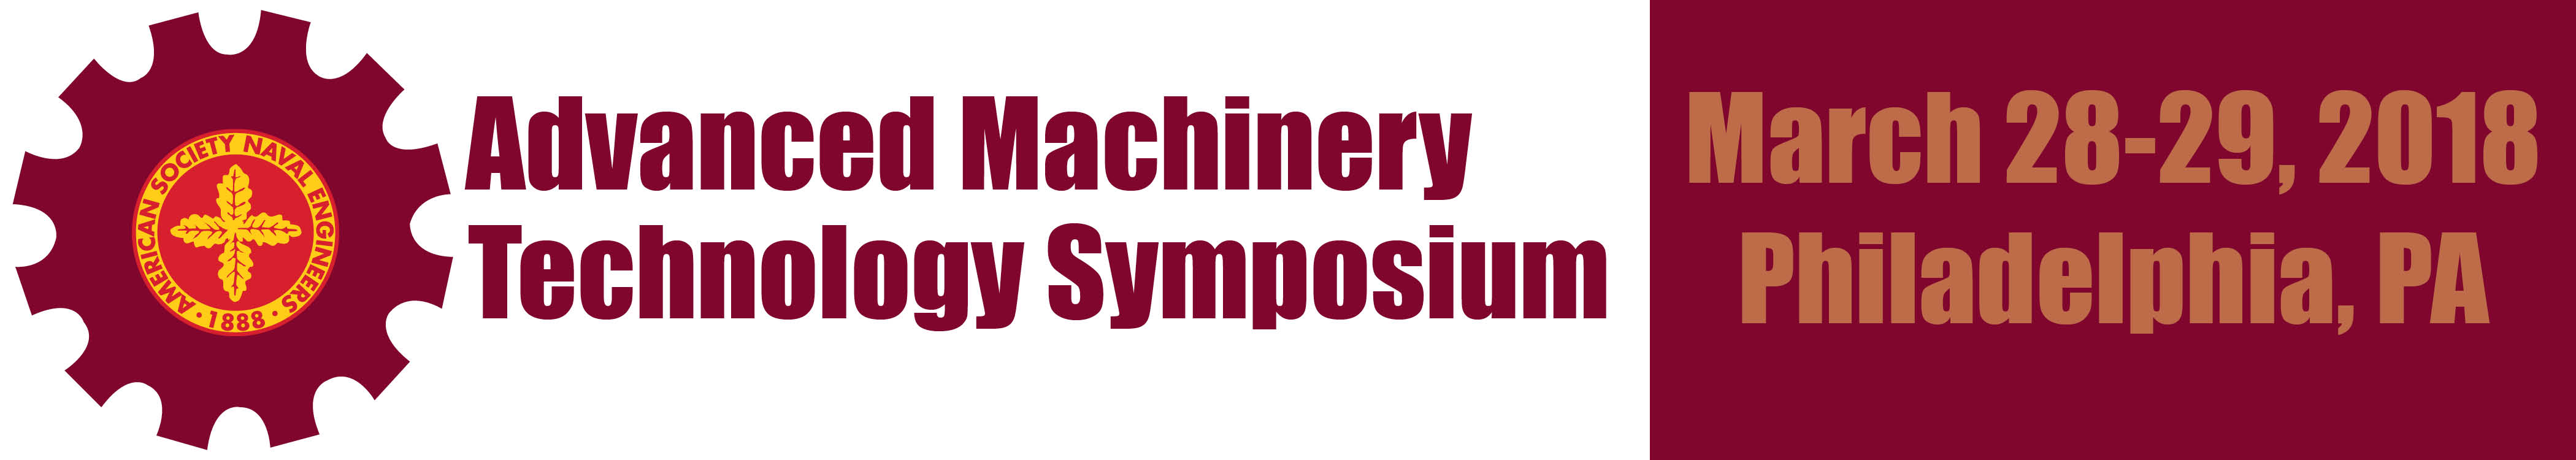 Advanced Machinery Technology Symposium